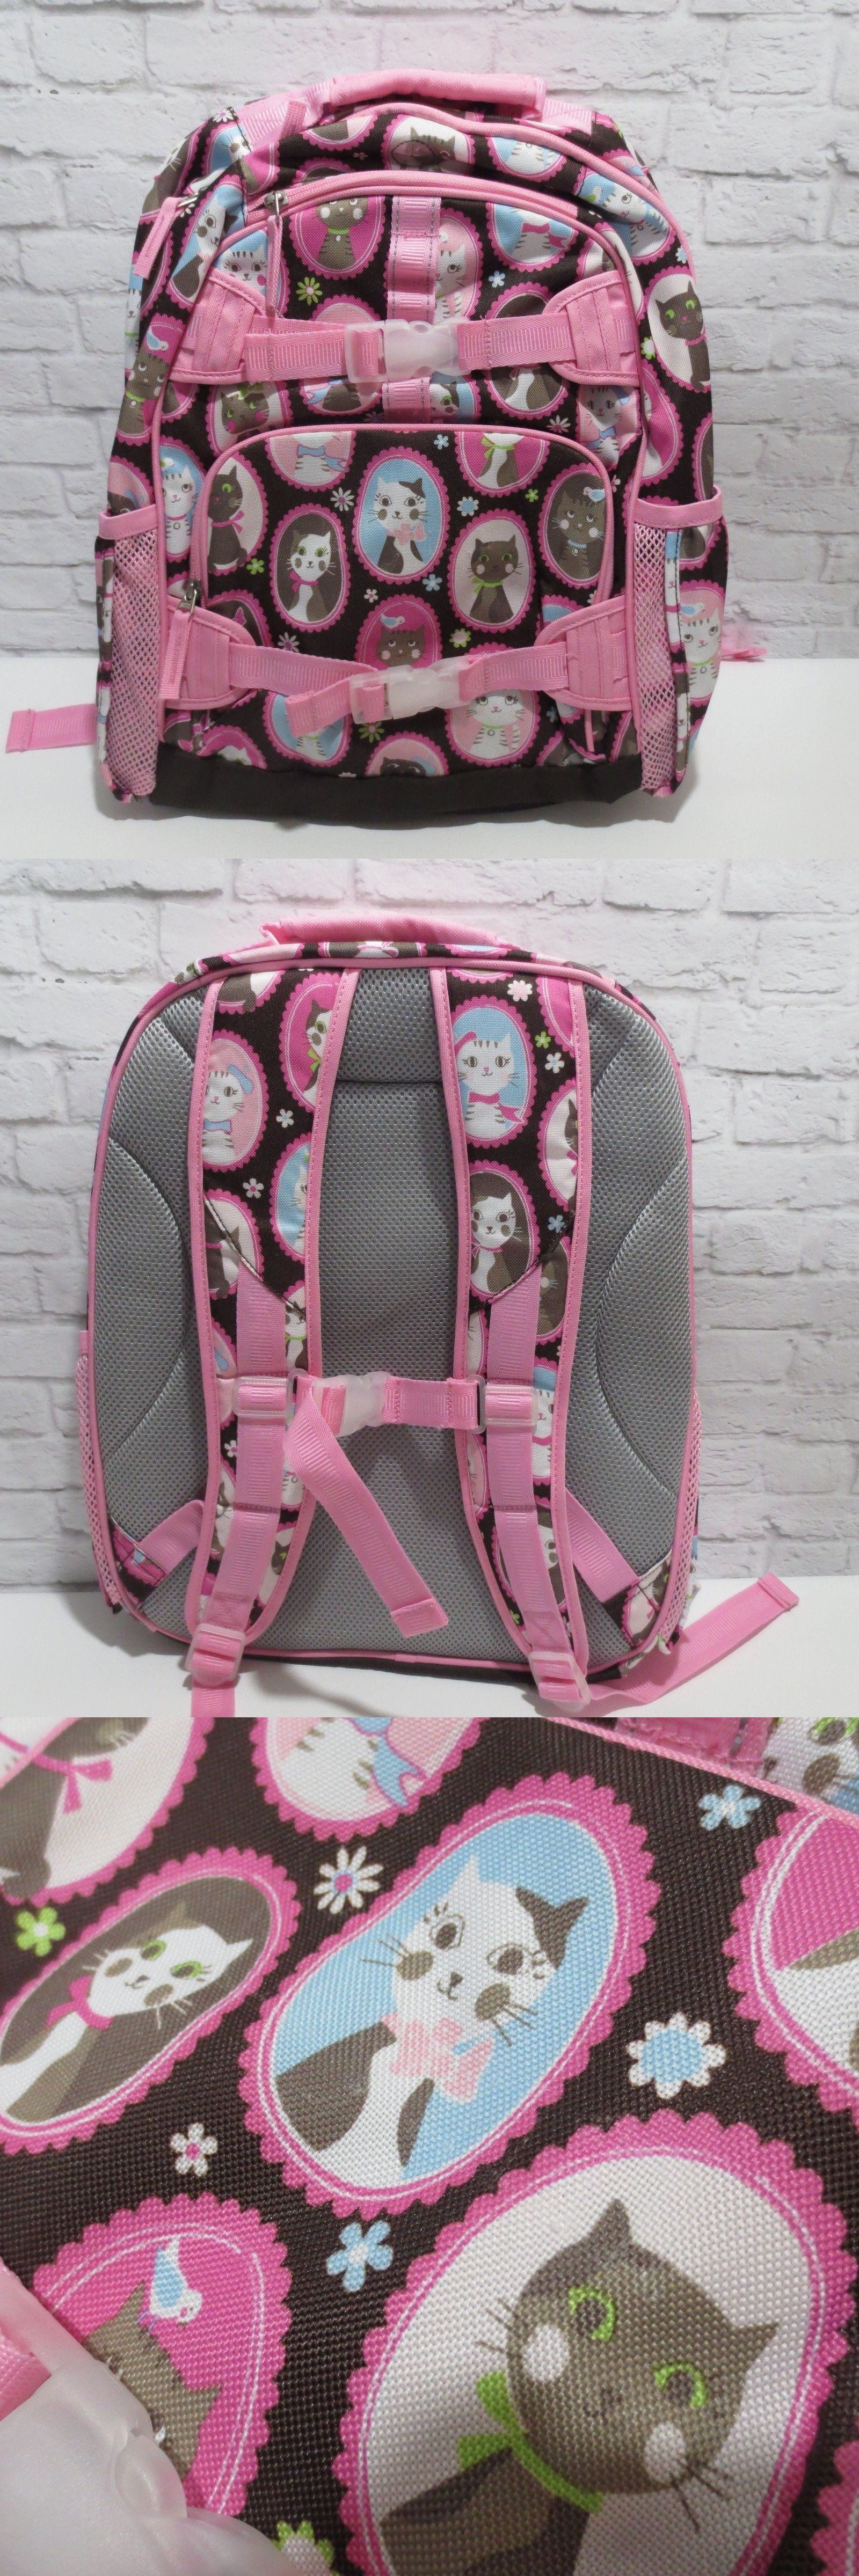 Backpacks 57917: Pottery Barn Kids Large Glam Kitty Cat Backpack Girls Chocolate And Pink And Blue -> BUY IT NOW ONLY: $39.99 on eBay!